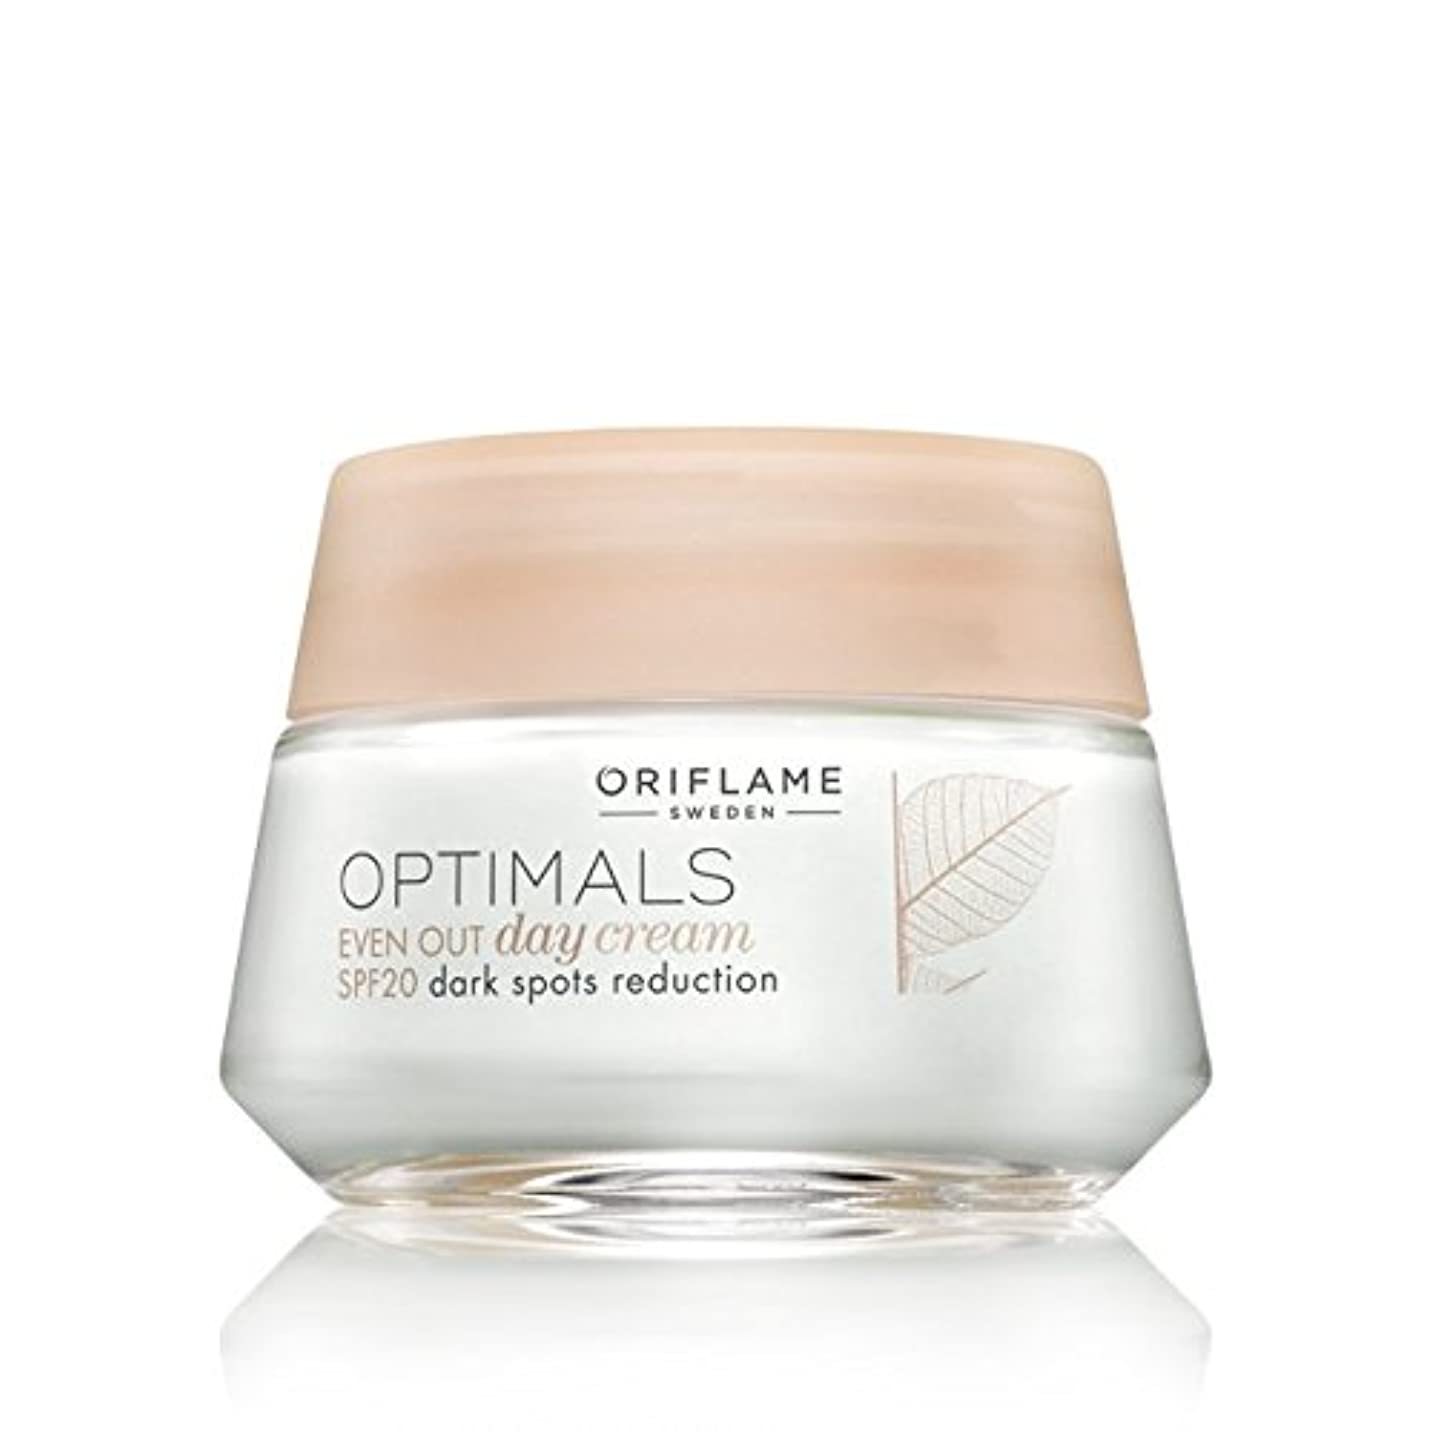 エスカレーター田舎者自動Oriflame Optimals SPF 20 Dark Spot Reduction Even Out Day Cream, 50ml